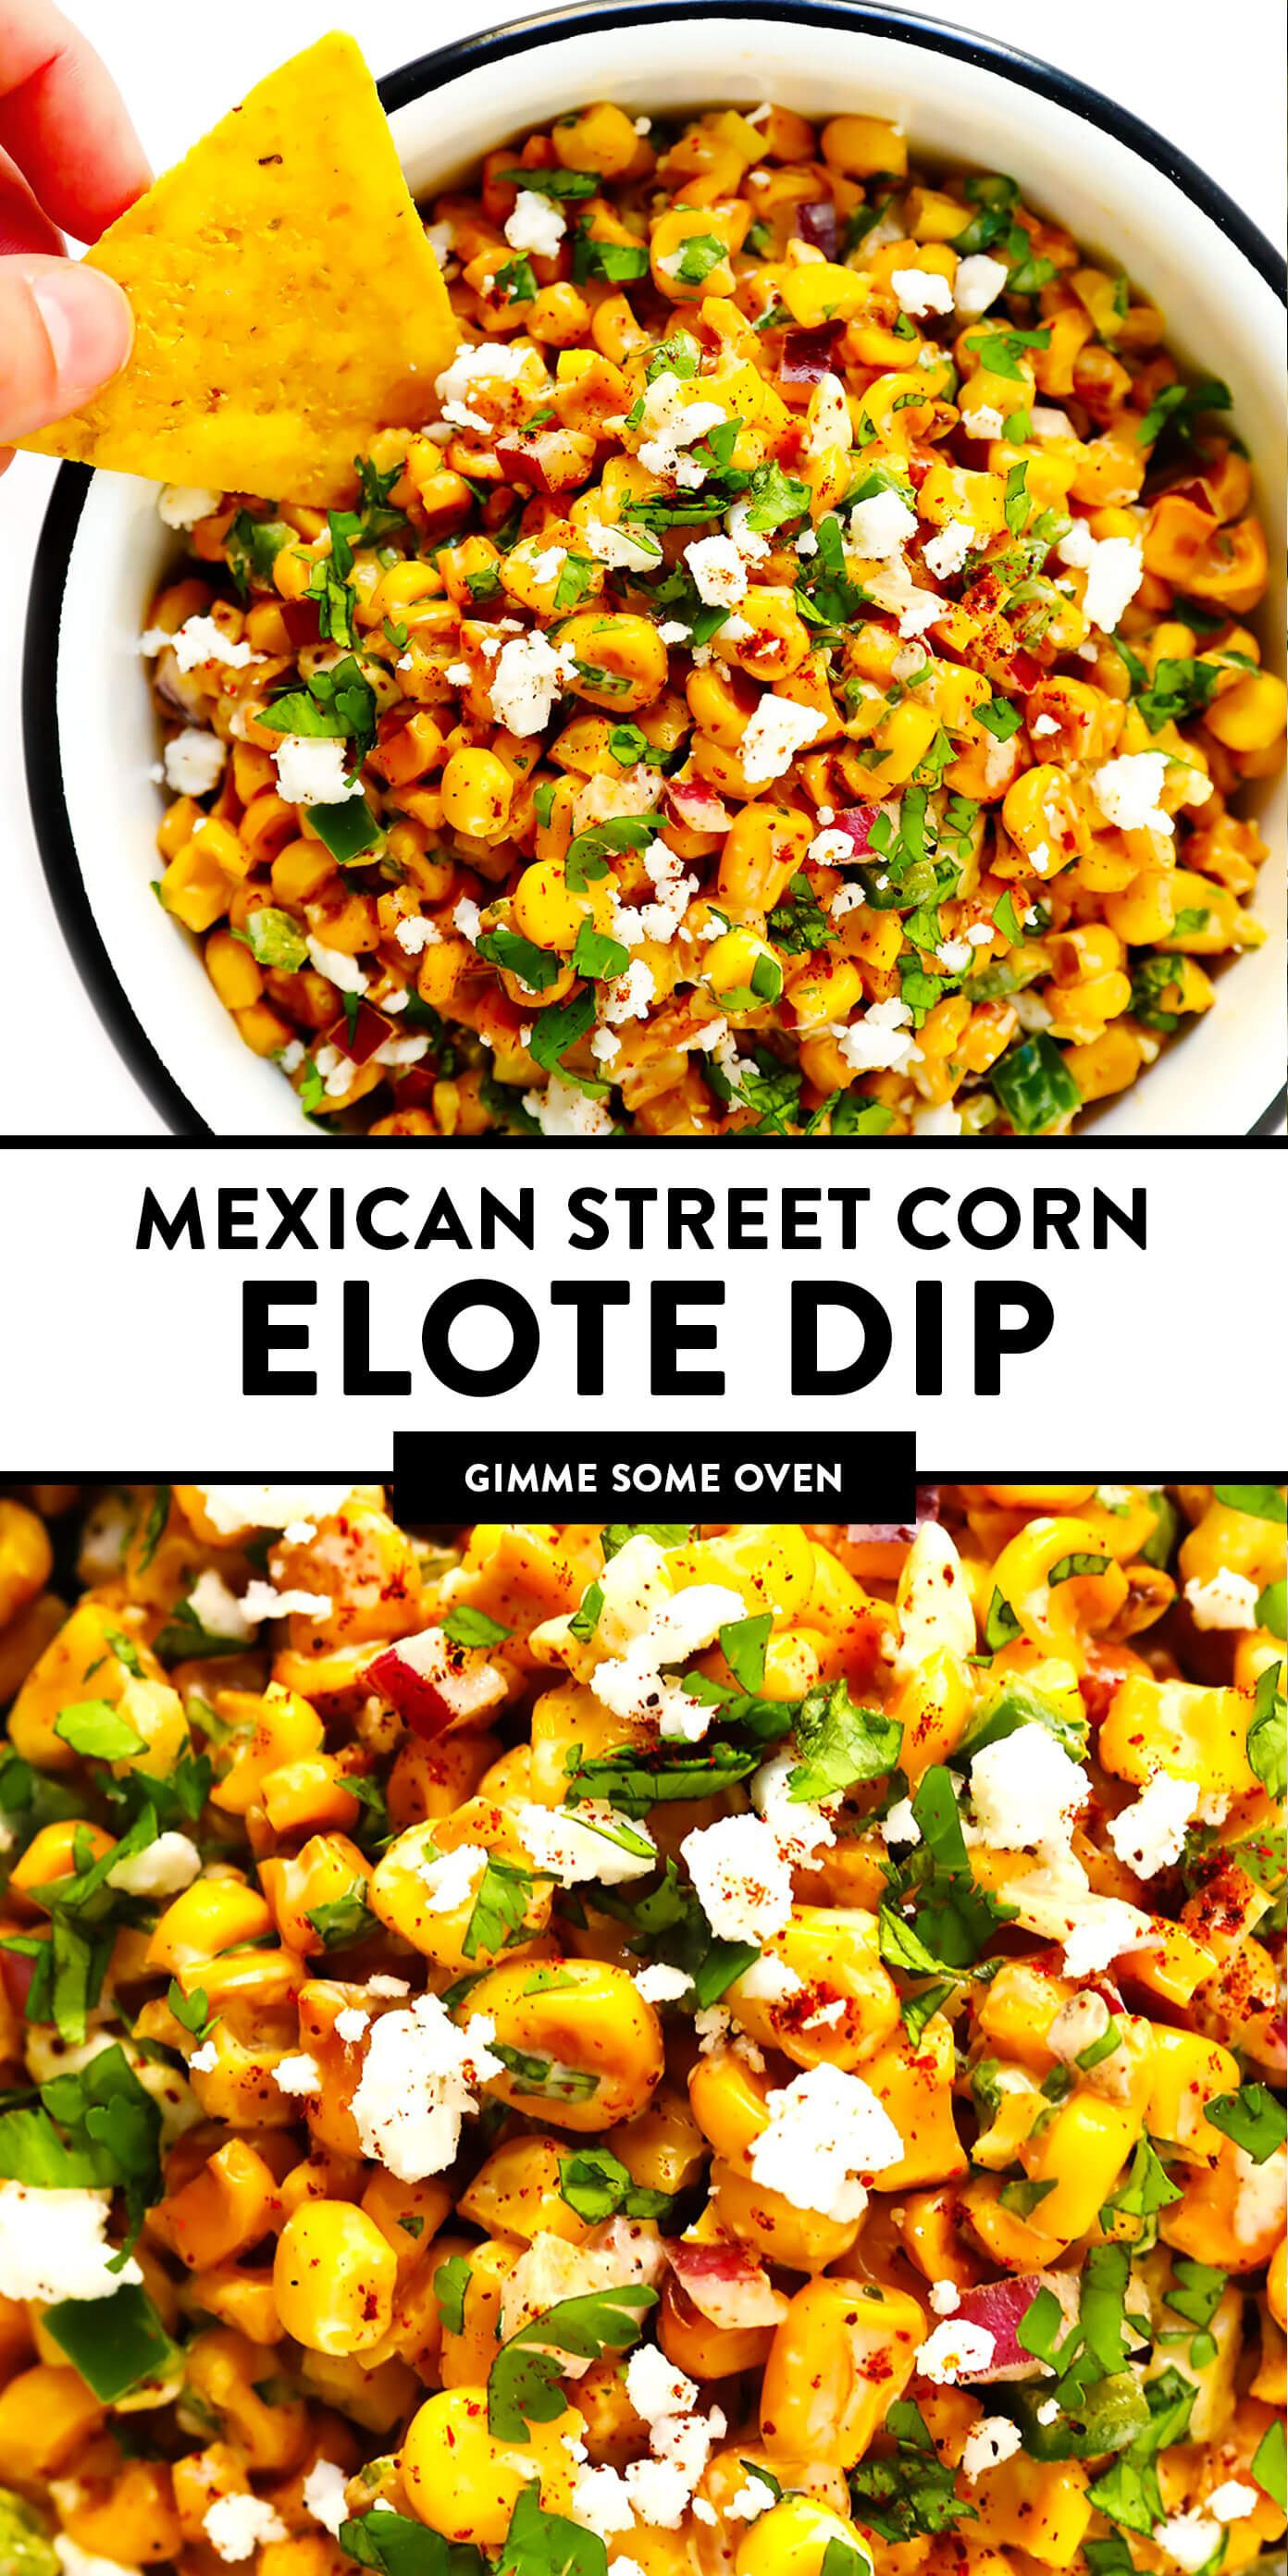 Easy Elote Dip | Gimme Some Oven